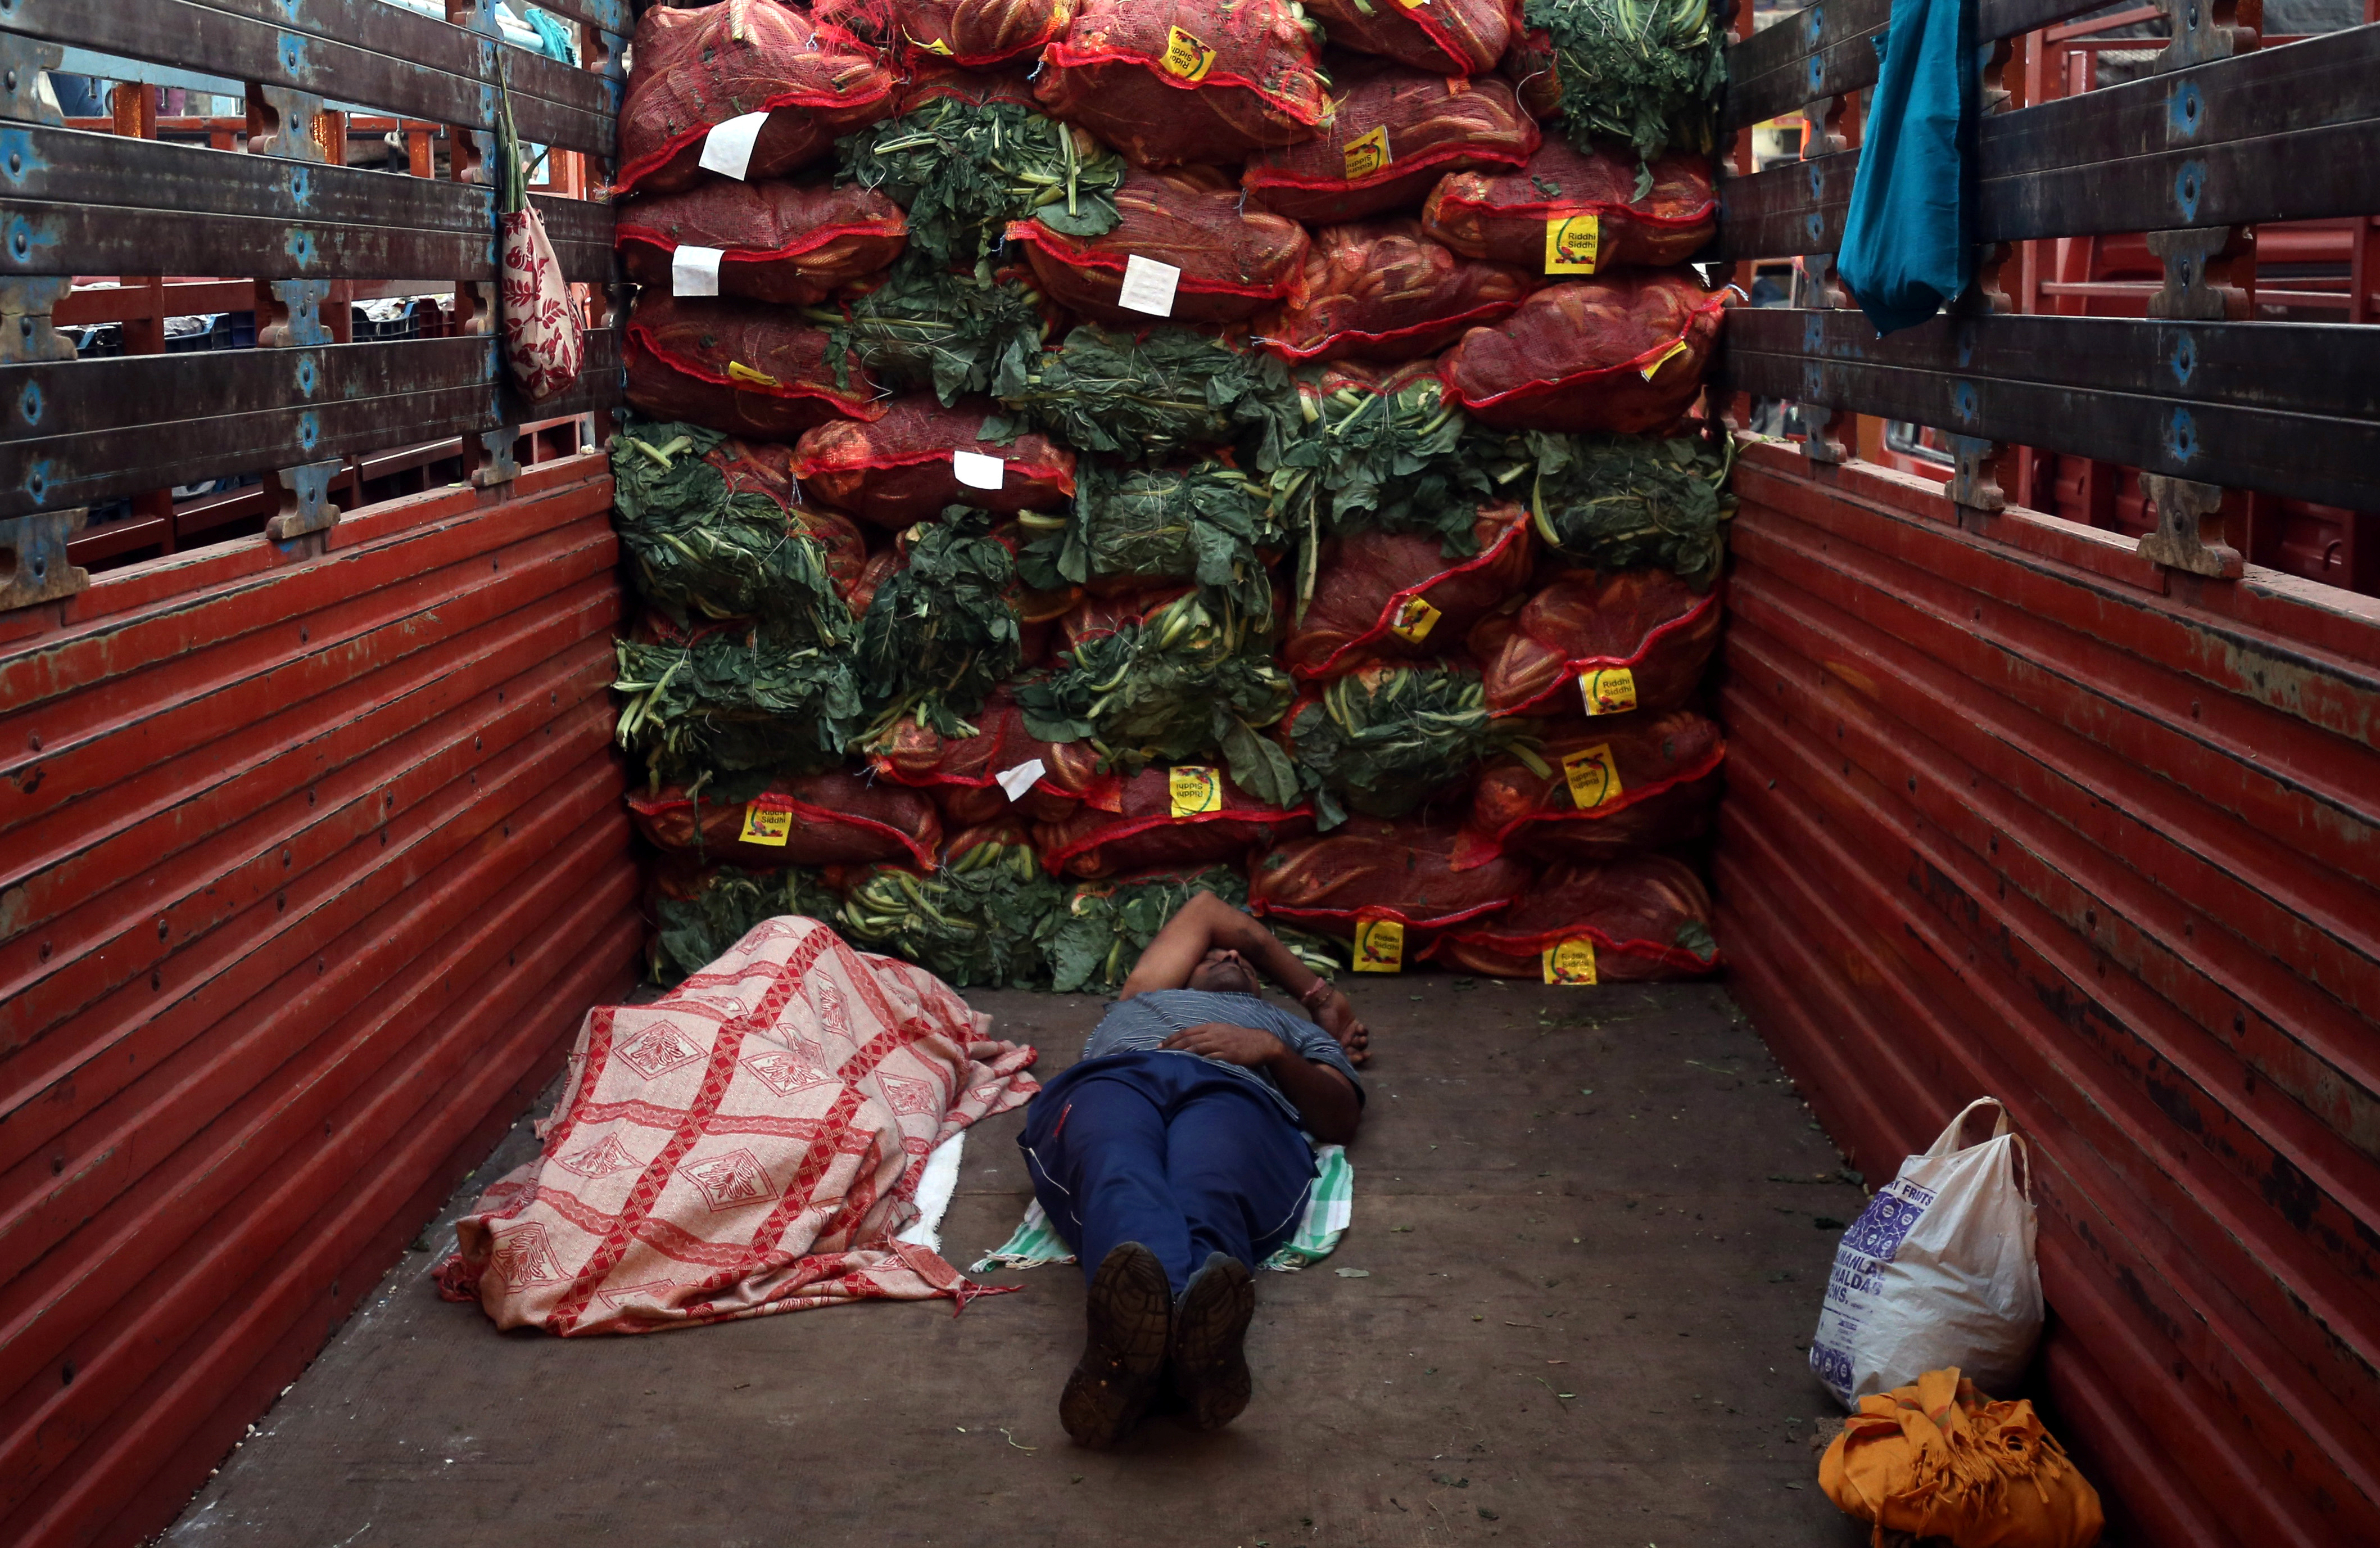 Men sleep in a supply truck loaded with sacks of cauliflower at a vegetable wholesale market in Mumbai, India, February 14, 2019. REUTERS/Francis Mascarenhas